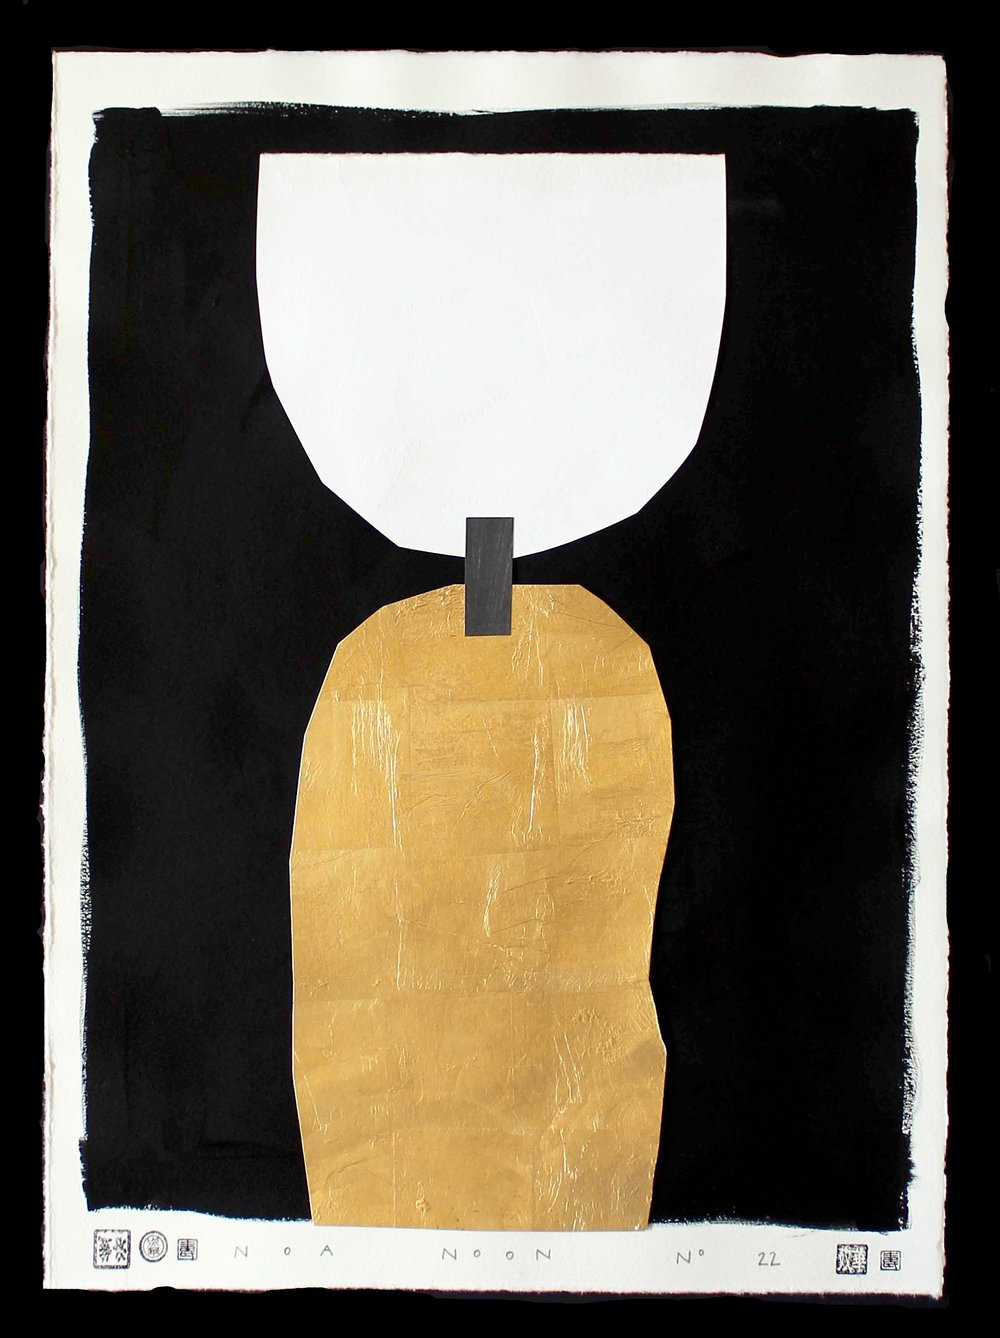 COLLAGE NO. 7 - 40 X 50 CM COLLAGE ON HANDMADE PAPER WITH GOLD LEAF AND PIGMENT PAINT.